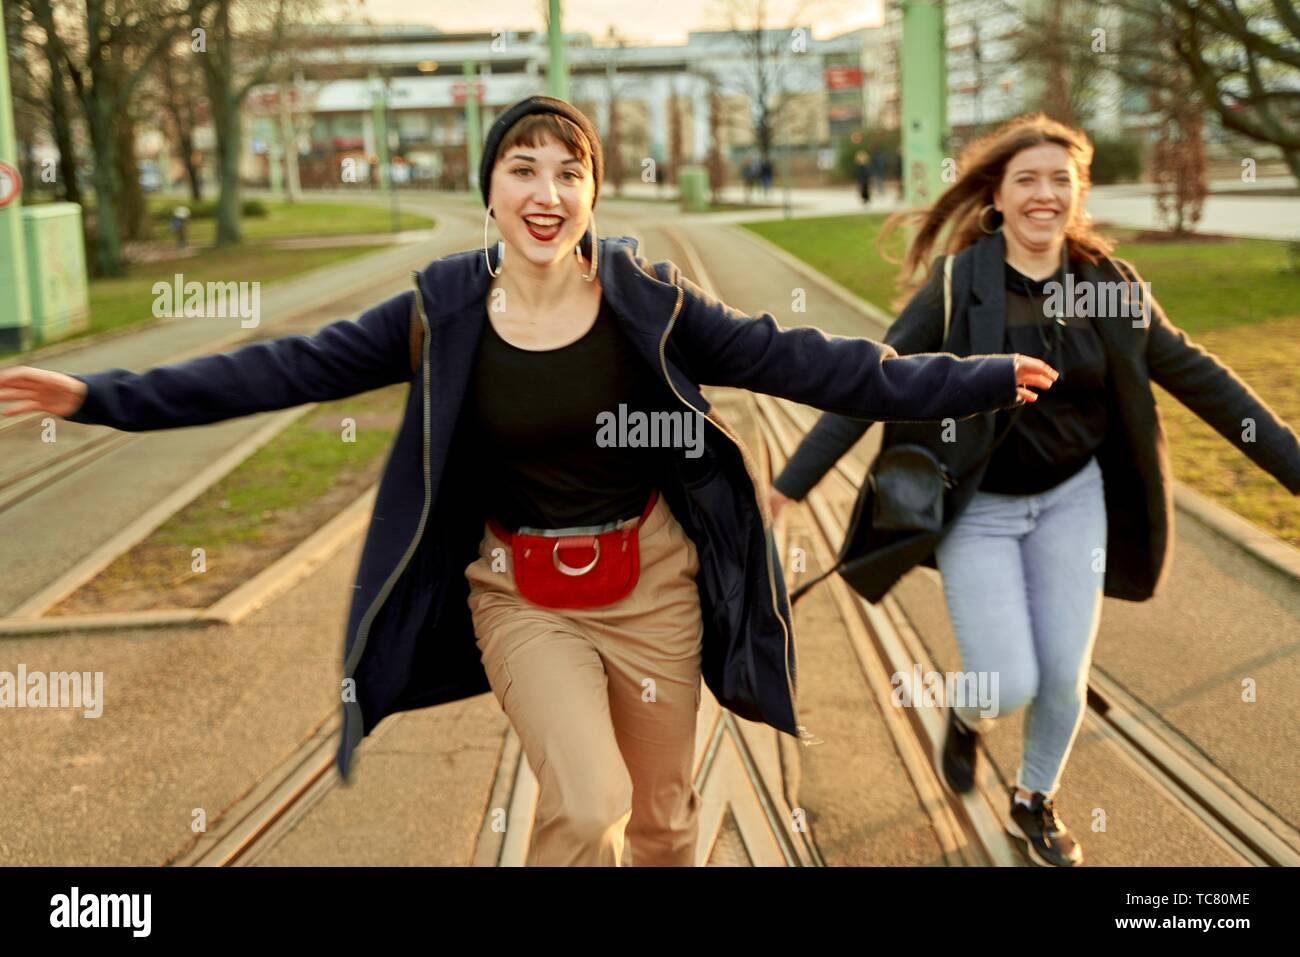 two adventurous women running at street in city Cottbus, Brandenburg, Germany. - Stock Image